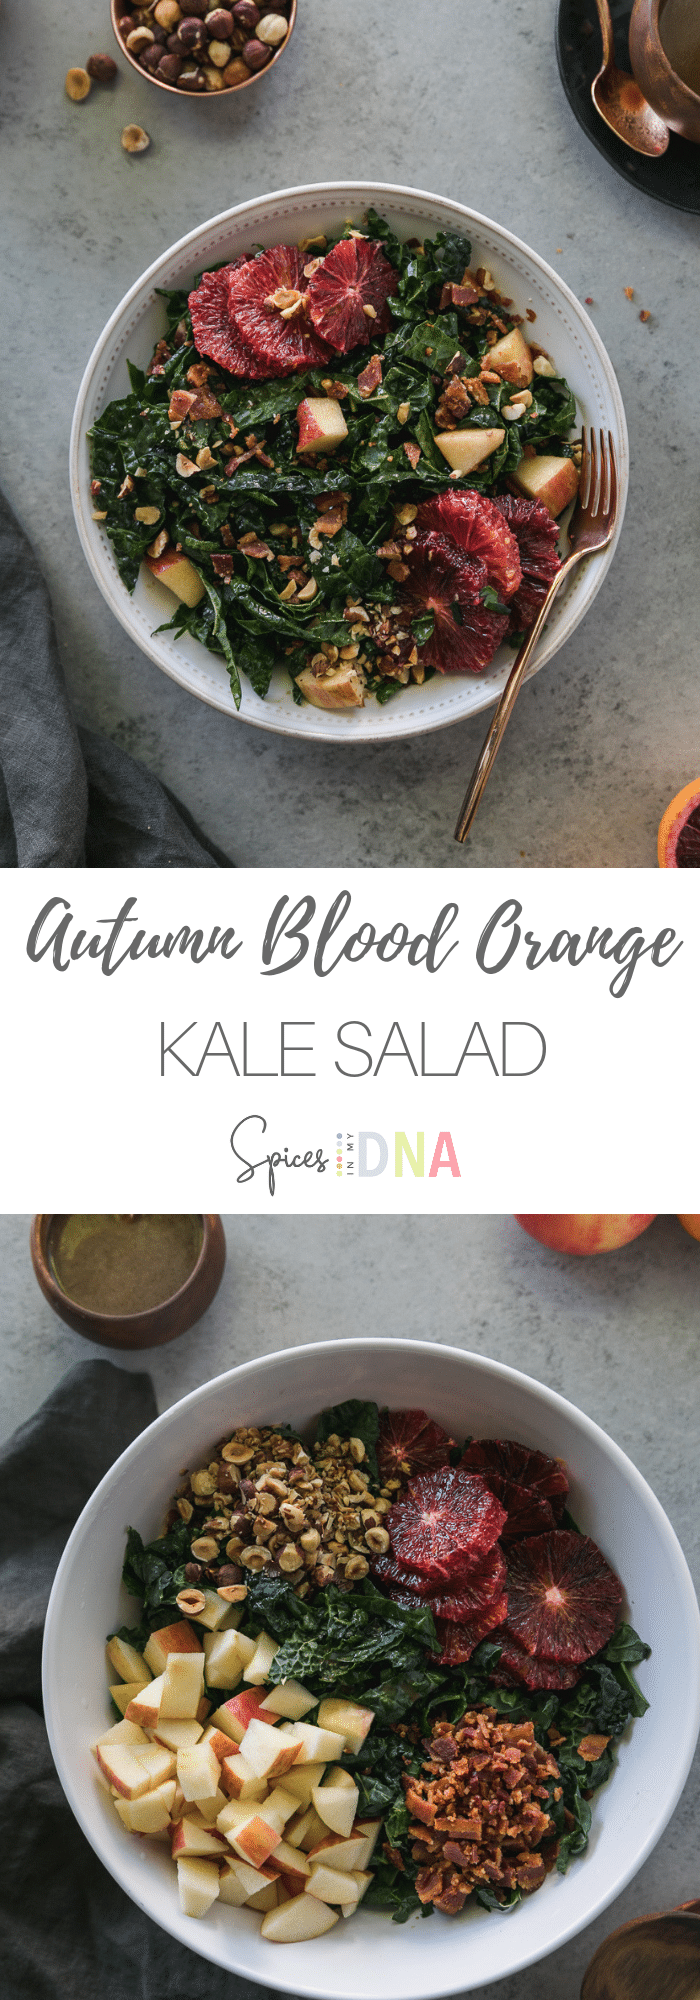 This Autumn Blood Orange Kale Salad is a super simple and incredibly delicious fall salad! It's filled with the best mix of textures and flavors: tuscan kale, honeycrisp apples, blood oranges, toasted hazelnuts, bacon, and a blood orange balsamic vinaigrette! #kale #salad #bloodorange #fallrecipe